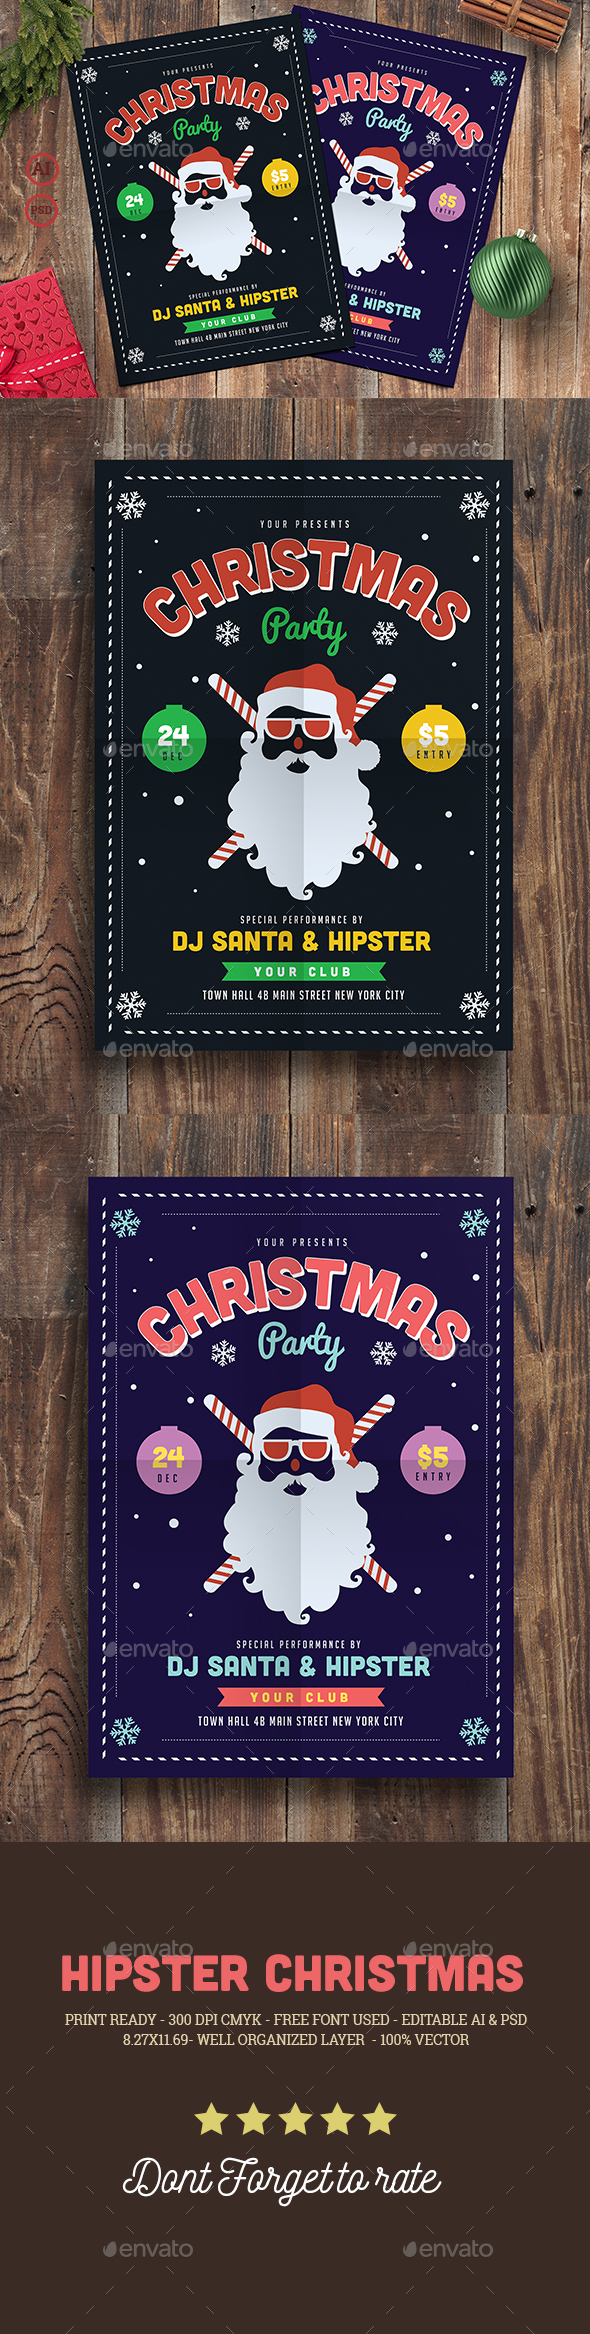 Hipster Christmas Party Flyer